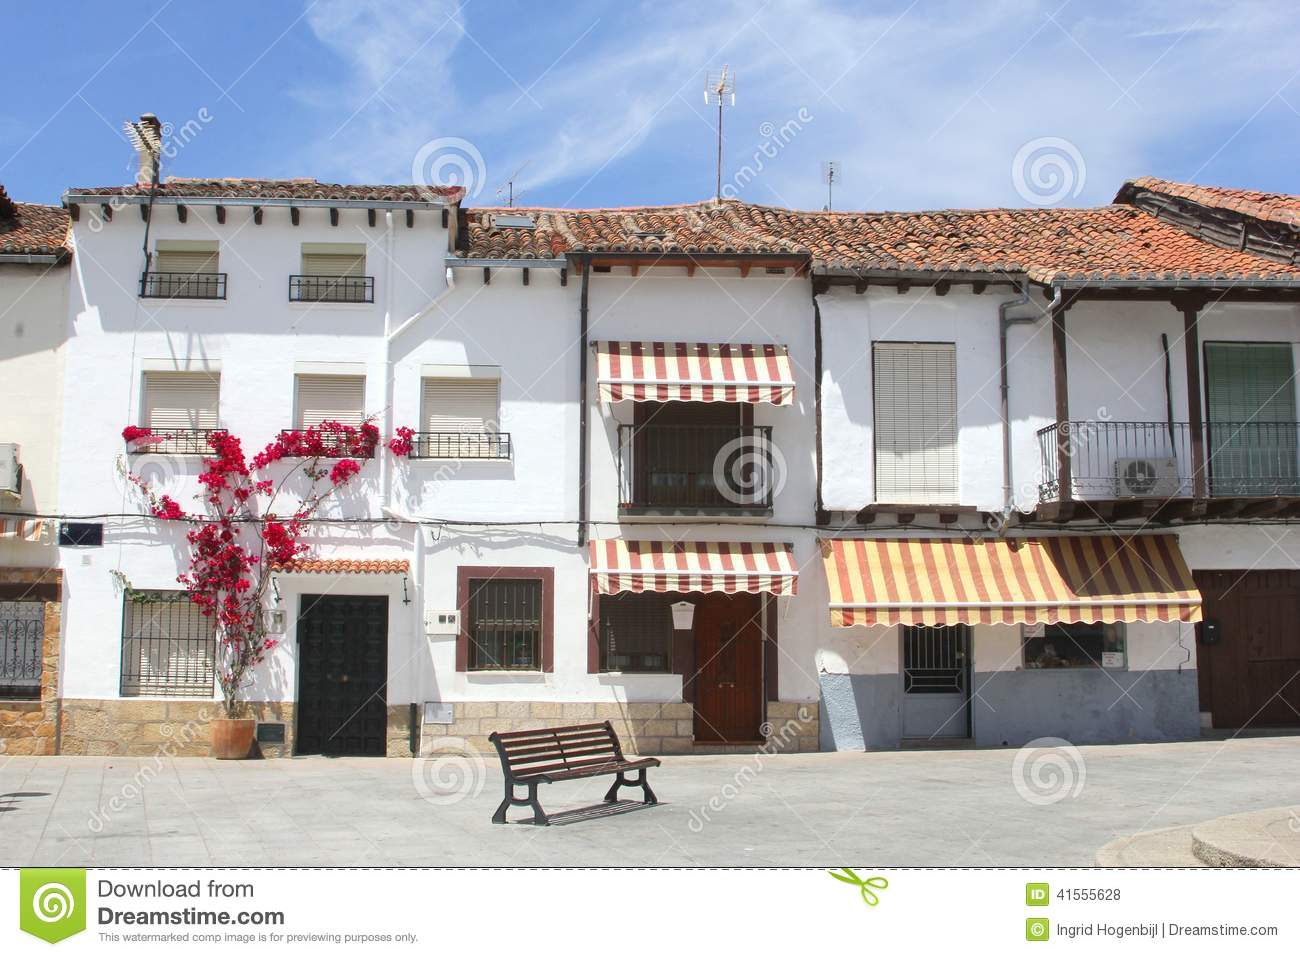 Scenic Spanish Village In Moorish Style, Spain Stock Photo.